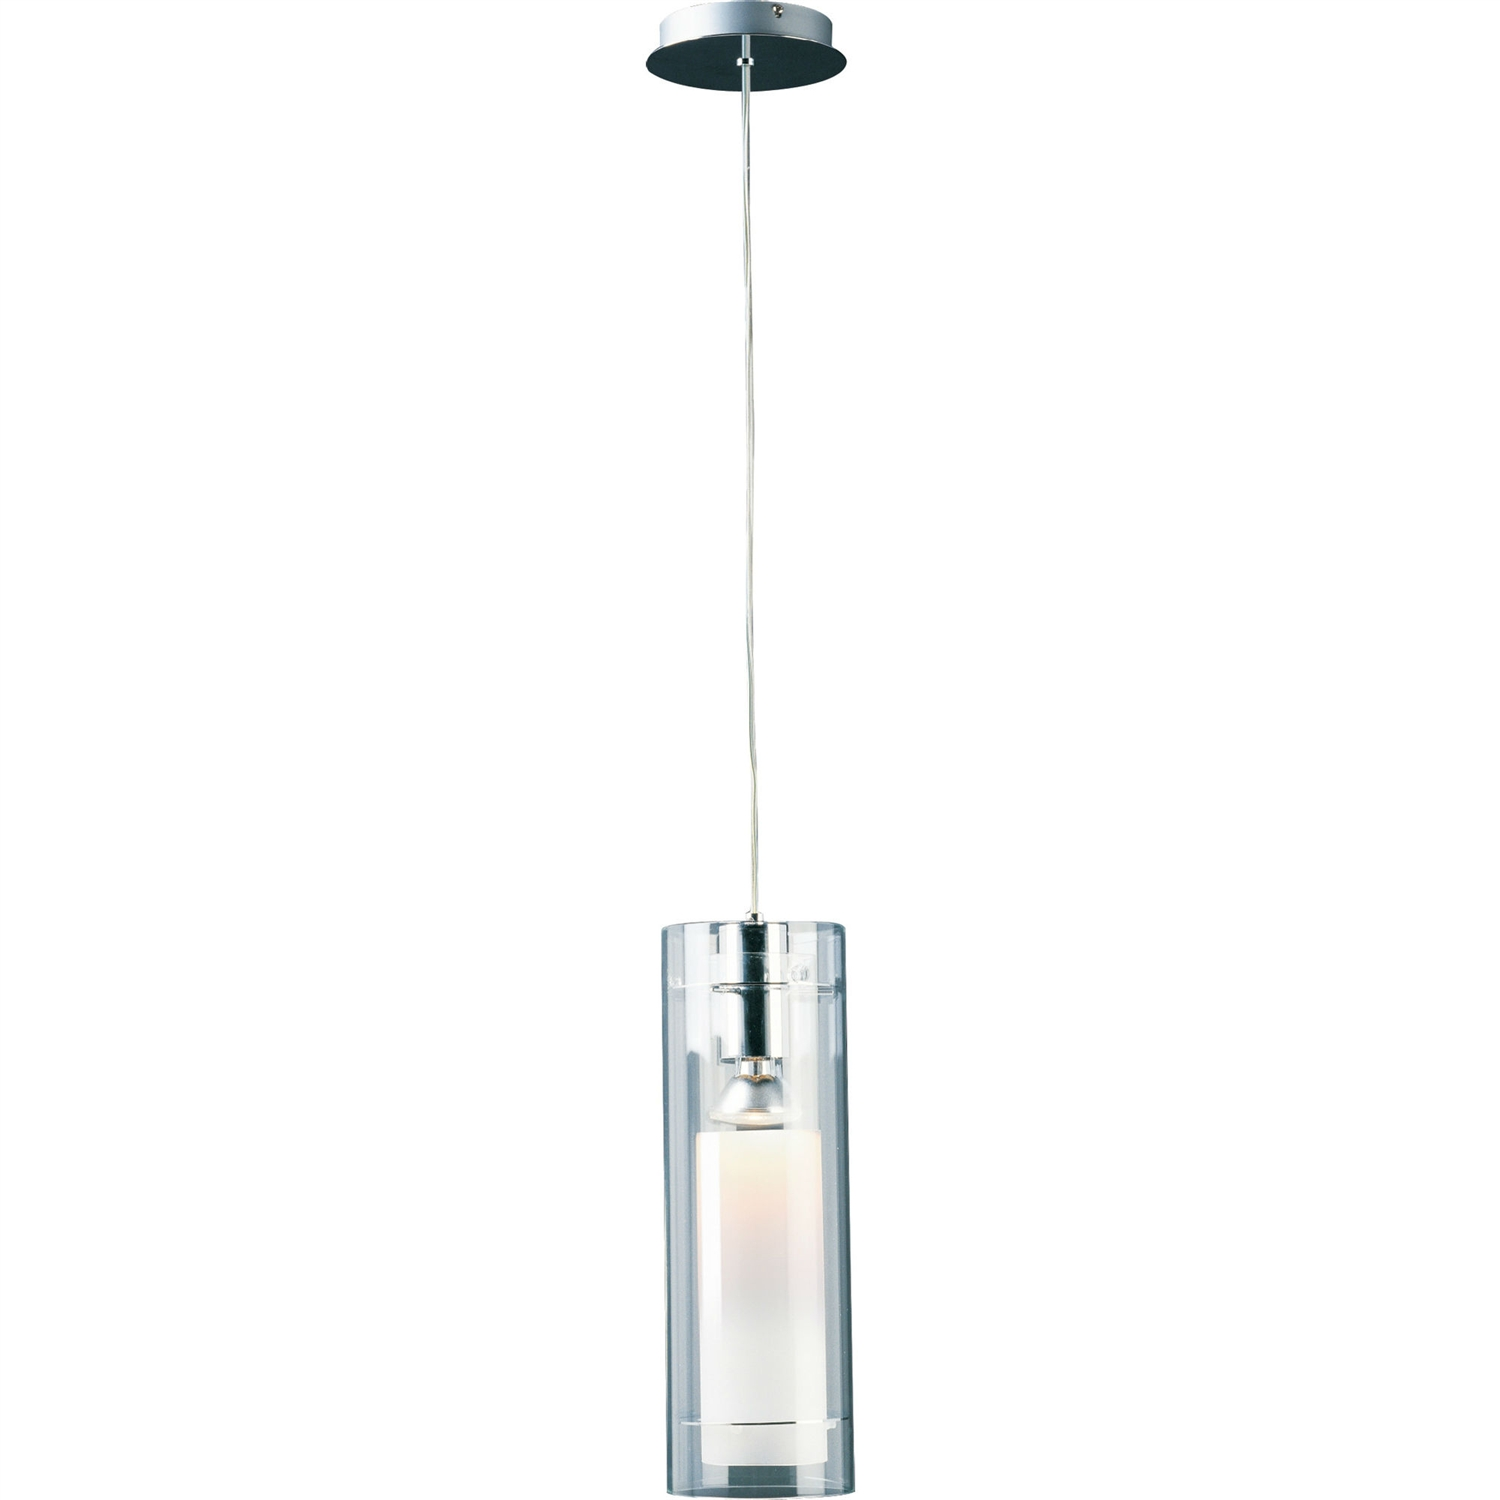 This Modern 1-Light Single Pendant Ceiling Light in Polished Chrome would be a great addition to your home. It has a polished chrome finish and no additional parts are required.